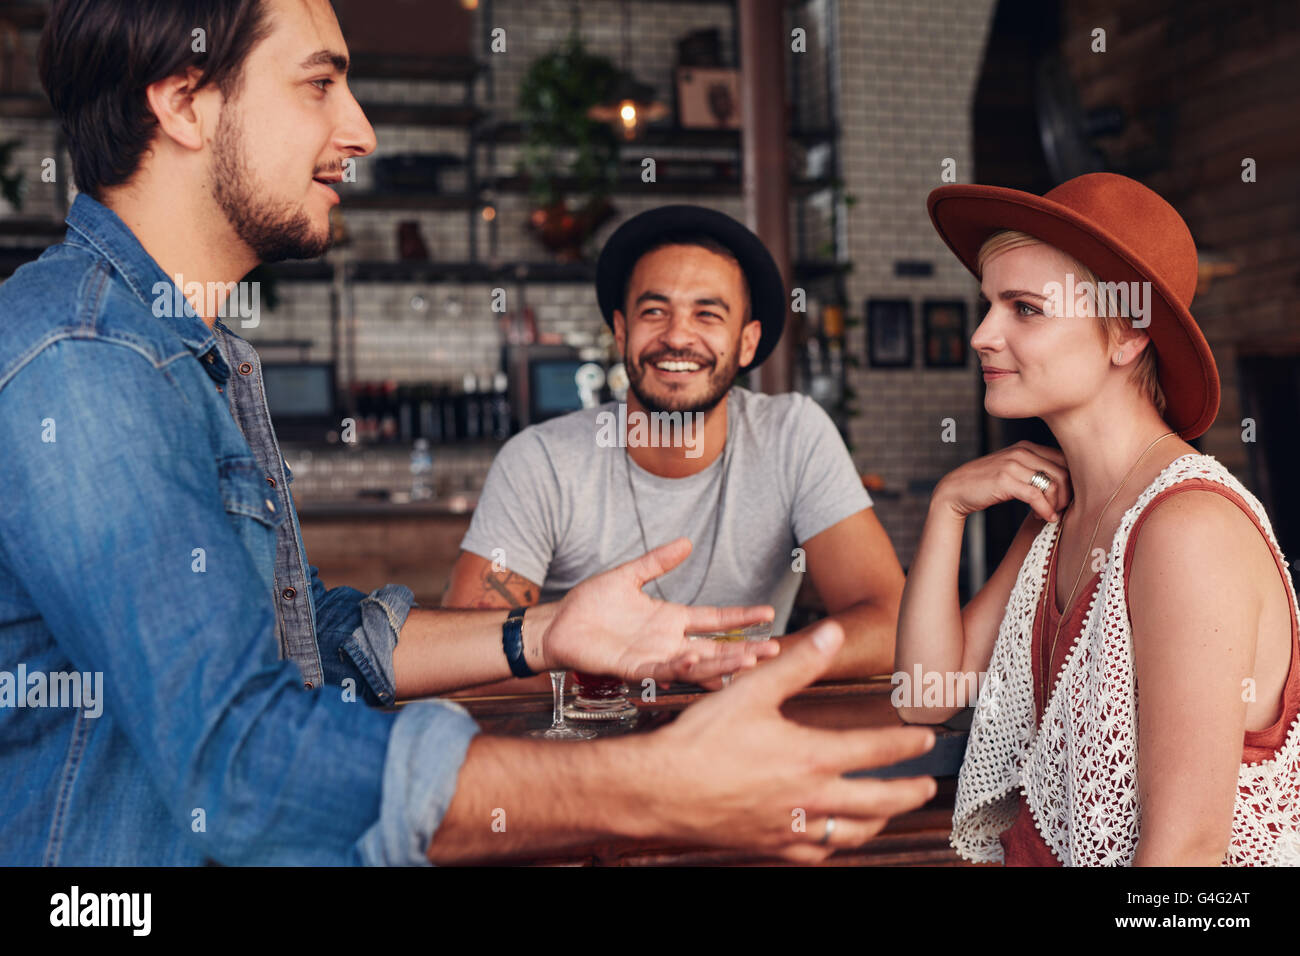 Group of young friends hanging out at a cafe. Young men and women sitting together and talking in a coffee shop. - Stock Image